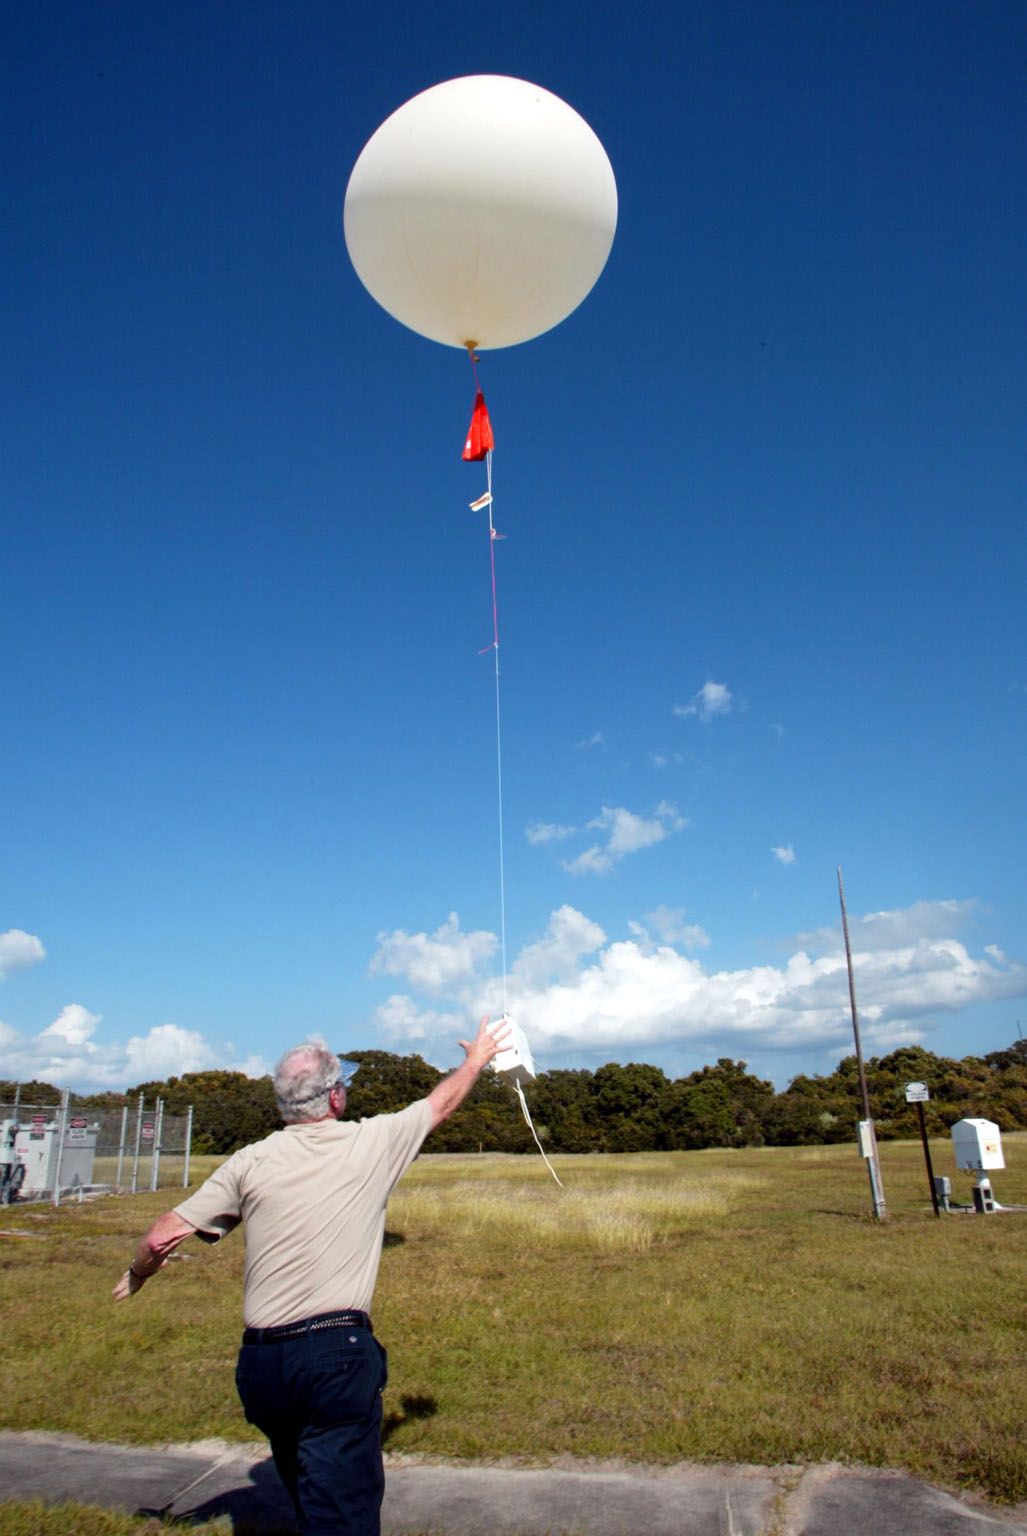 KENNEDY SPACE CENTER, FLA. -- Stephen Ezell, meteorological systems operator at Weather Station A, Cape Canaveral Air Force Station, releases a weather balloon. Such balloons are released twice a day. The package at the bottom is a radio sonde that collects temperature and humidity data as the balloon rises. The data is released to agencies nationwide, including the 45th Space Wing, which uses the data for its daily weather reports. The weather station provides additional data to NASA for launches -- releasing 12 balloons in eight hours prior to liftoff - and landings - releasing 5 balloons in six and a half hours before expected touchdown.